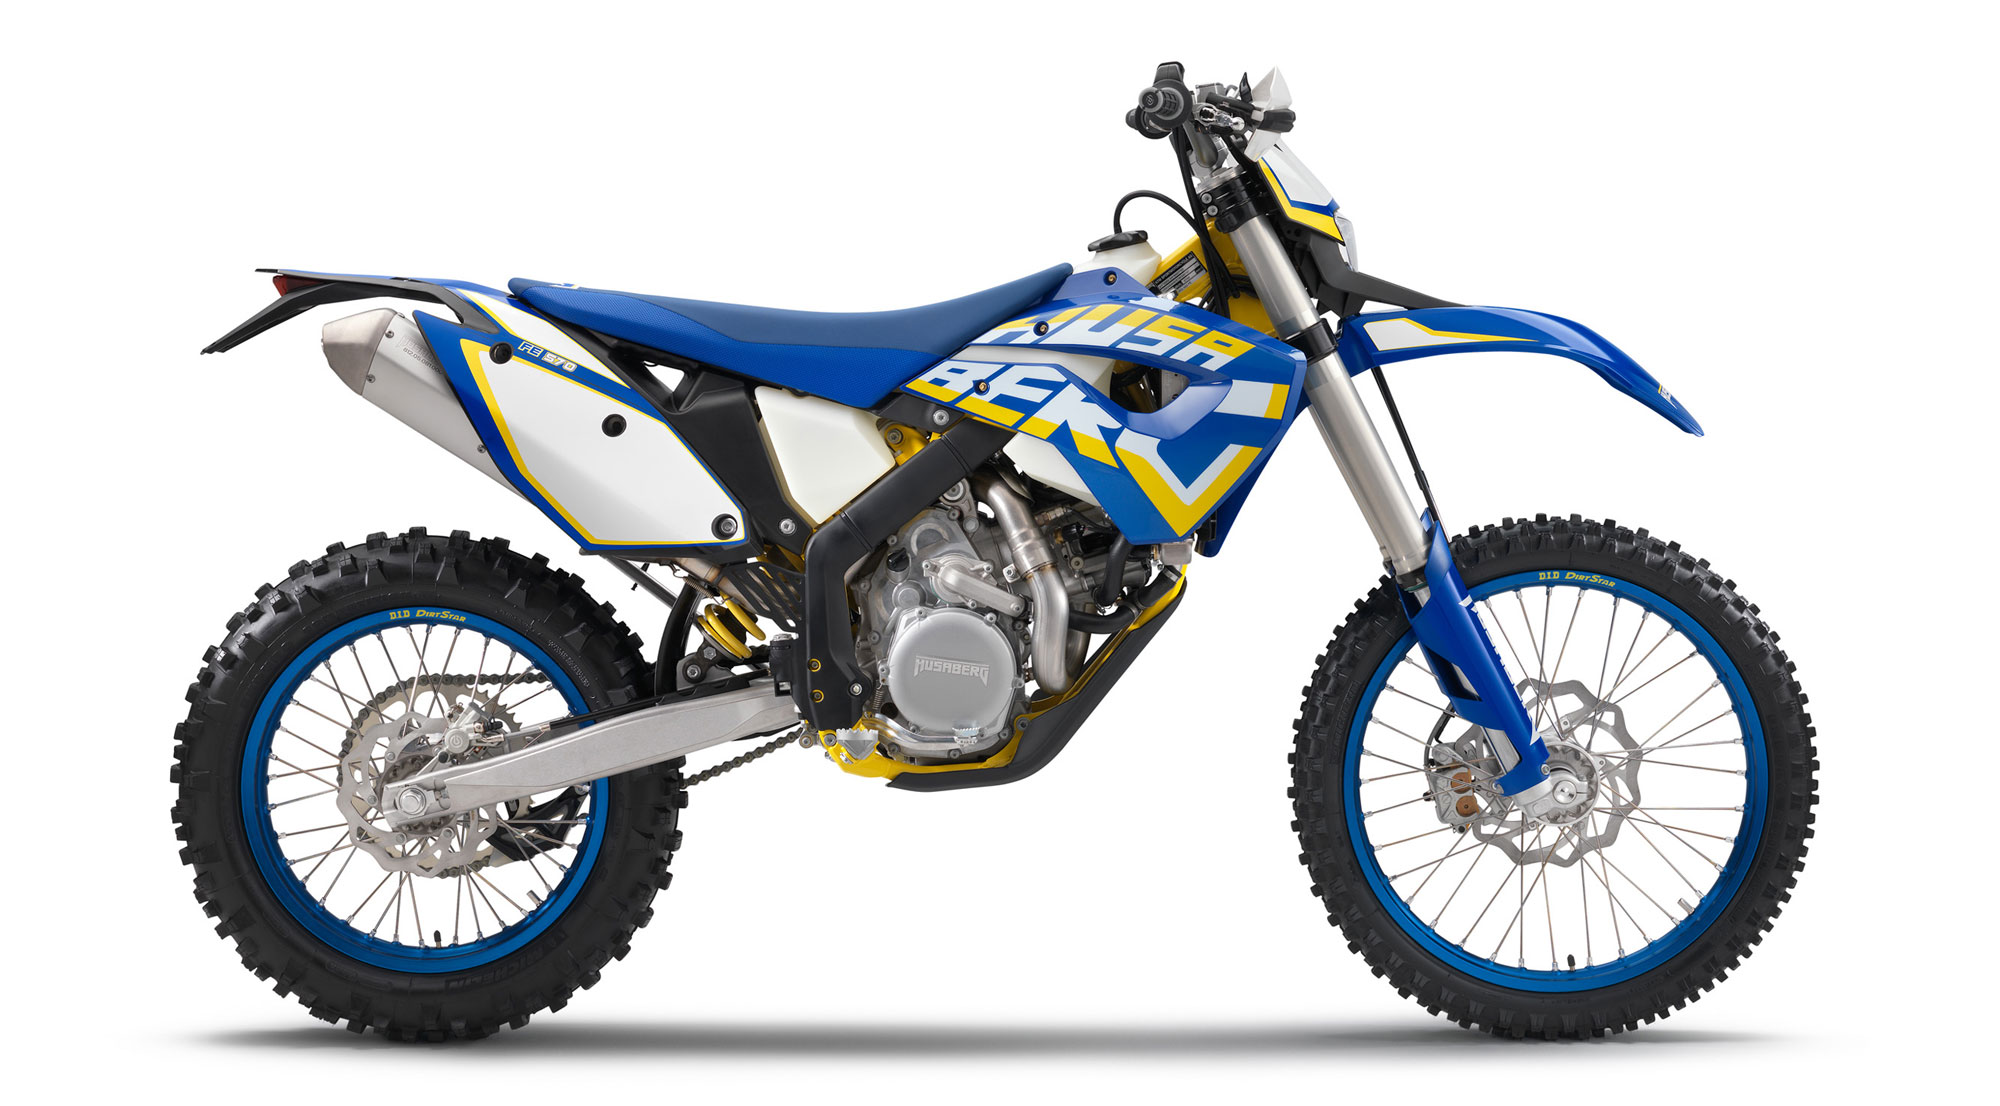 2012 husaberg fe570 review rh totalmotorcycle com